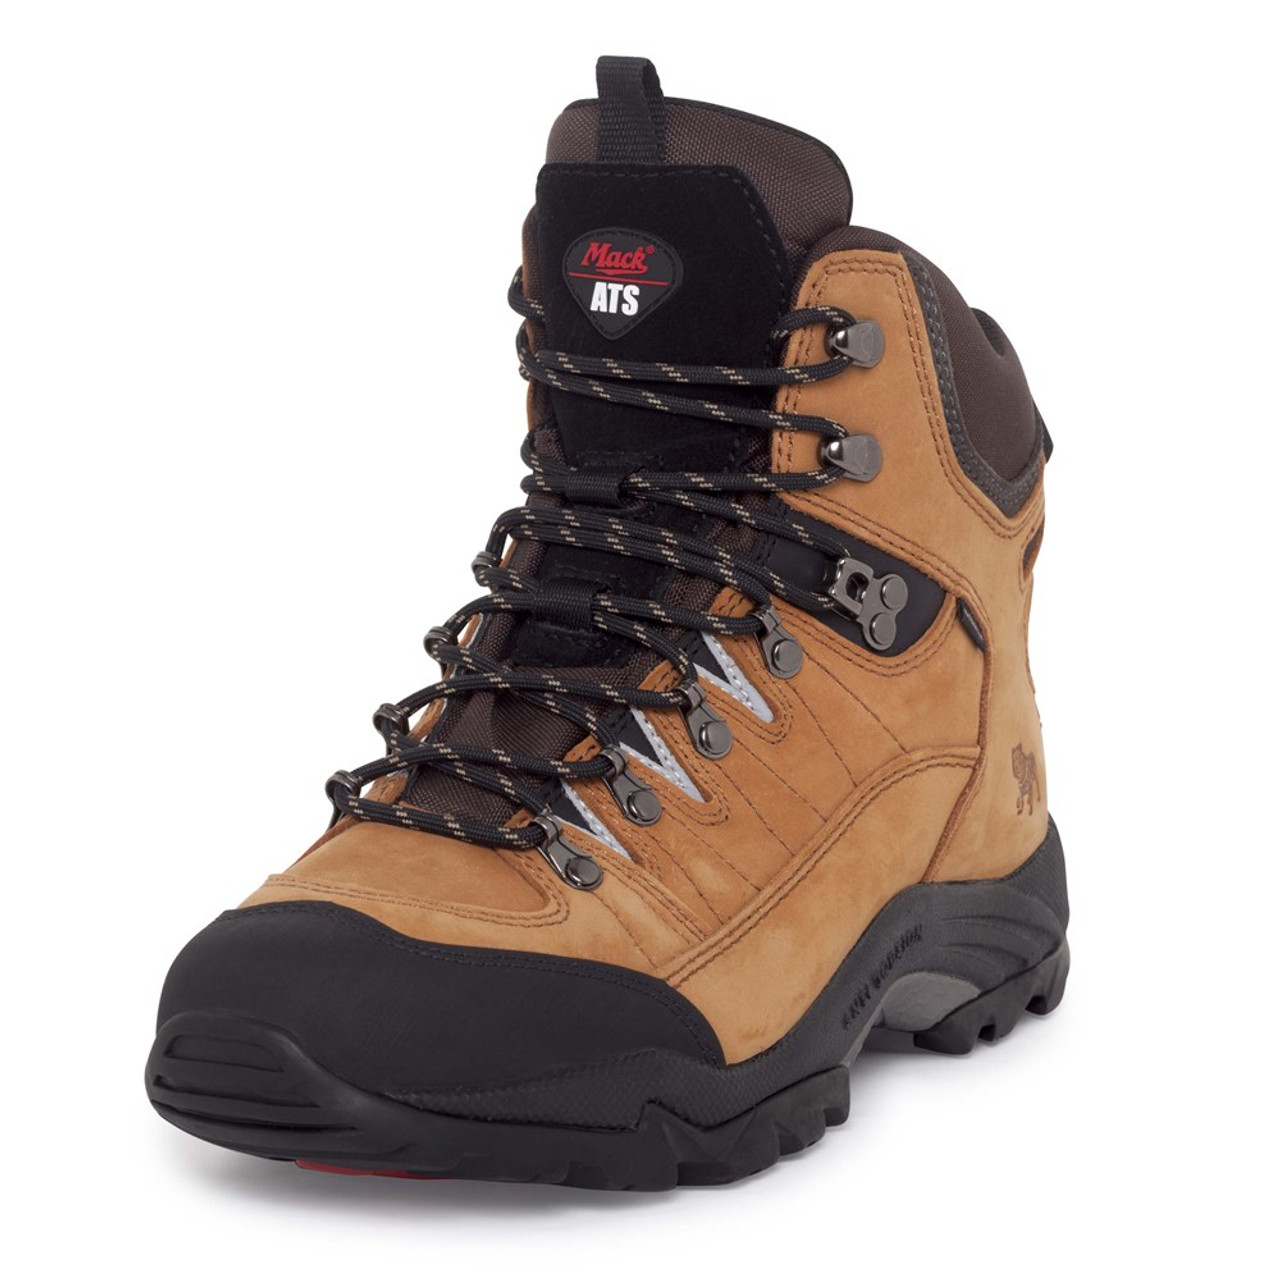 46a66044cf Mack Boots Peak, Lace Up Waterproof Hiking Boot With Padding, Honey